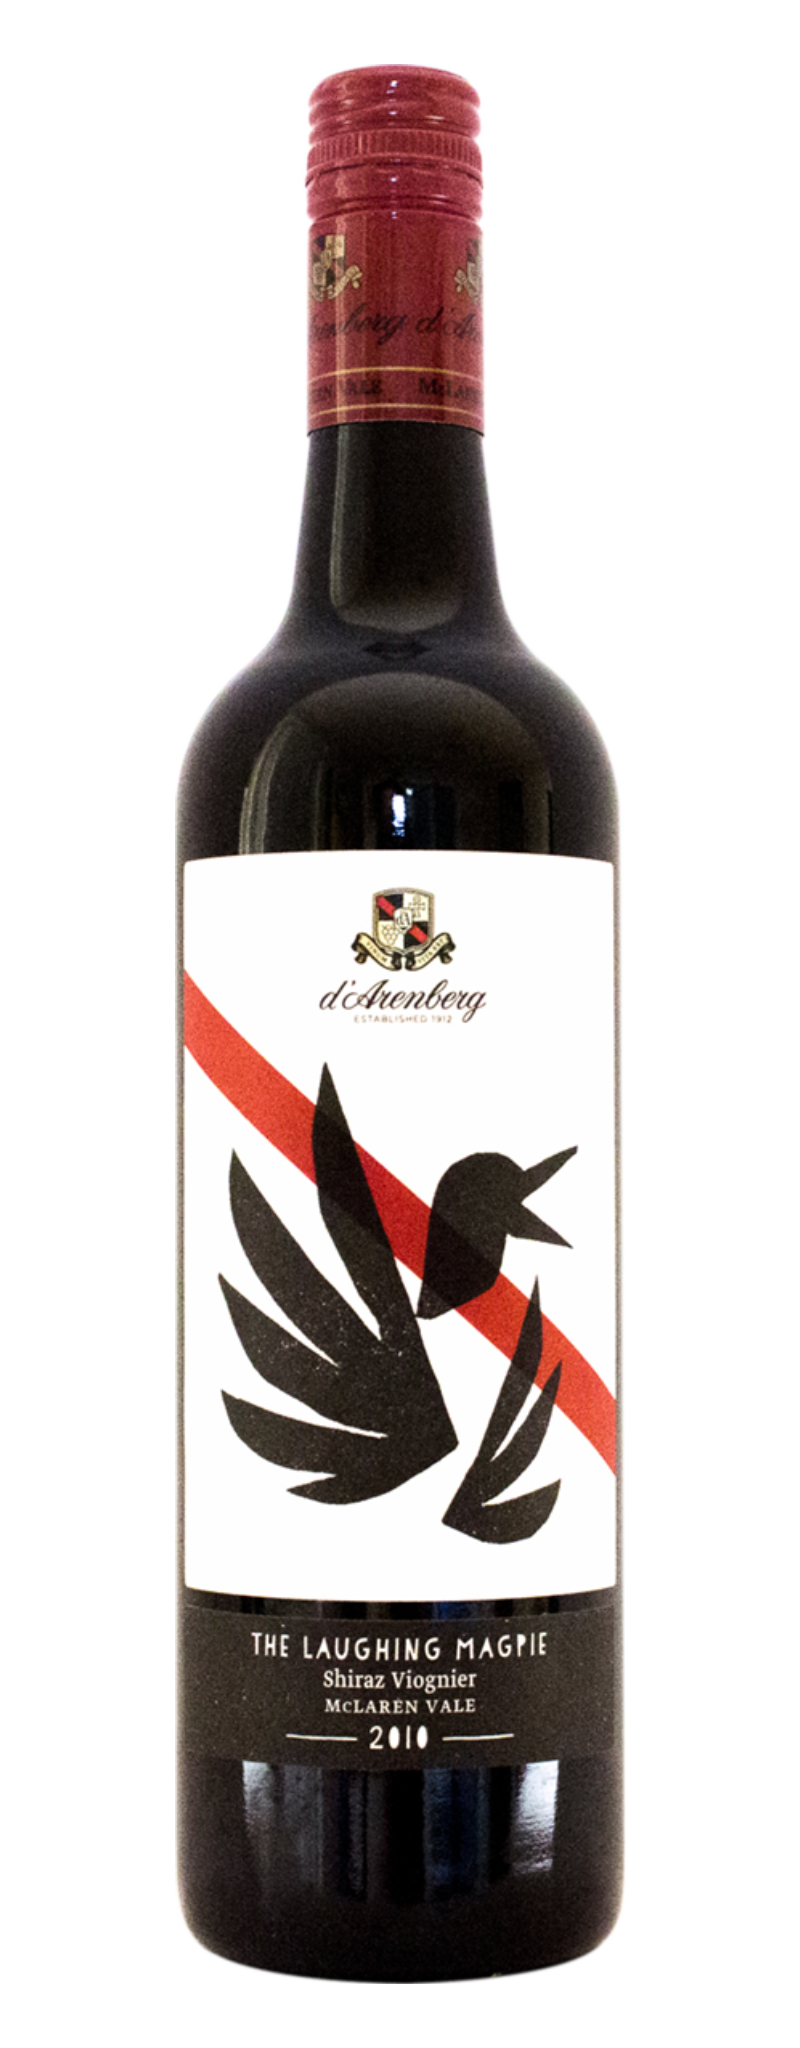 D'Arenberg, The Laughing Magpie Shiraz Viognier, McLaren Vale  - 750ml